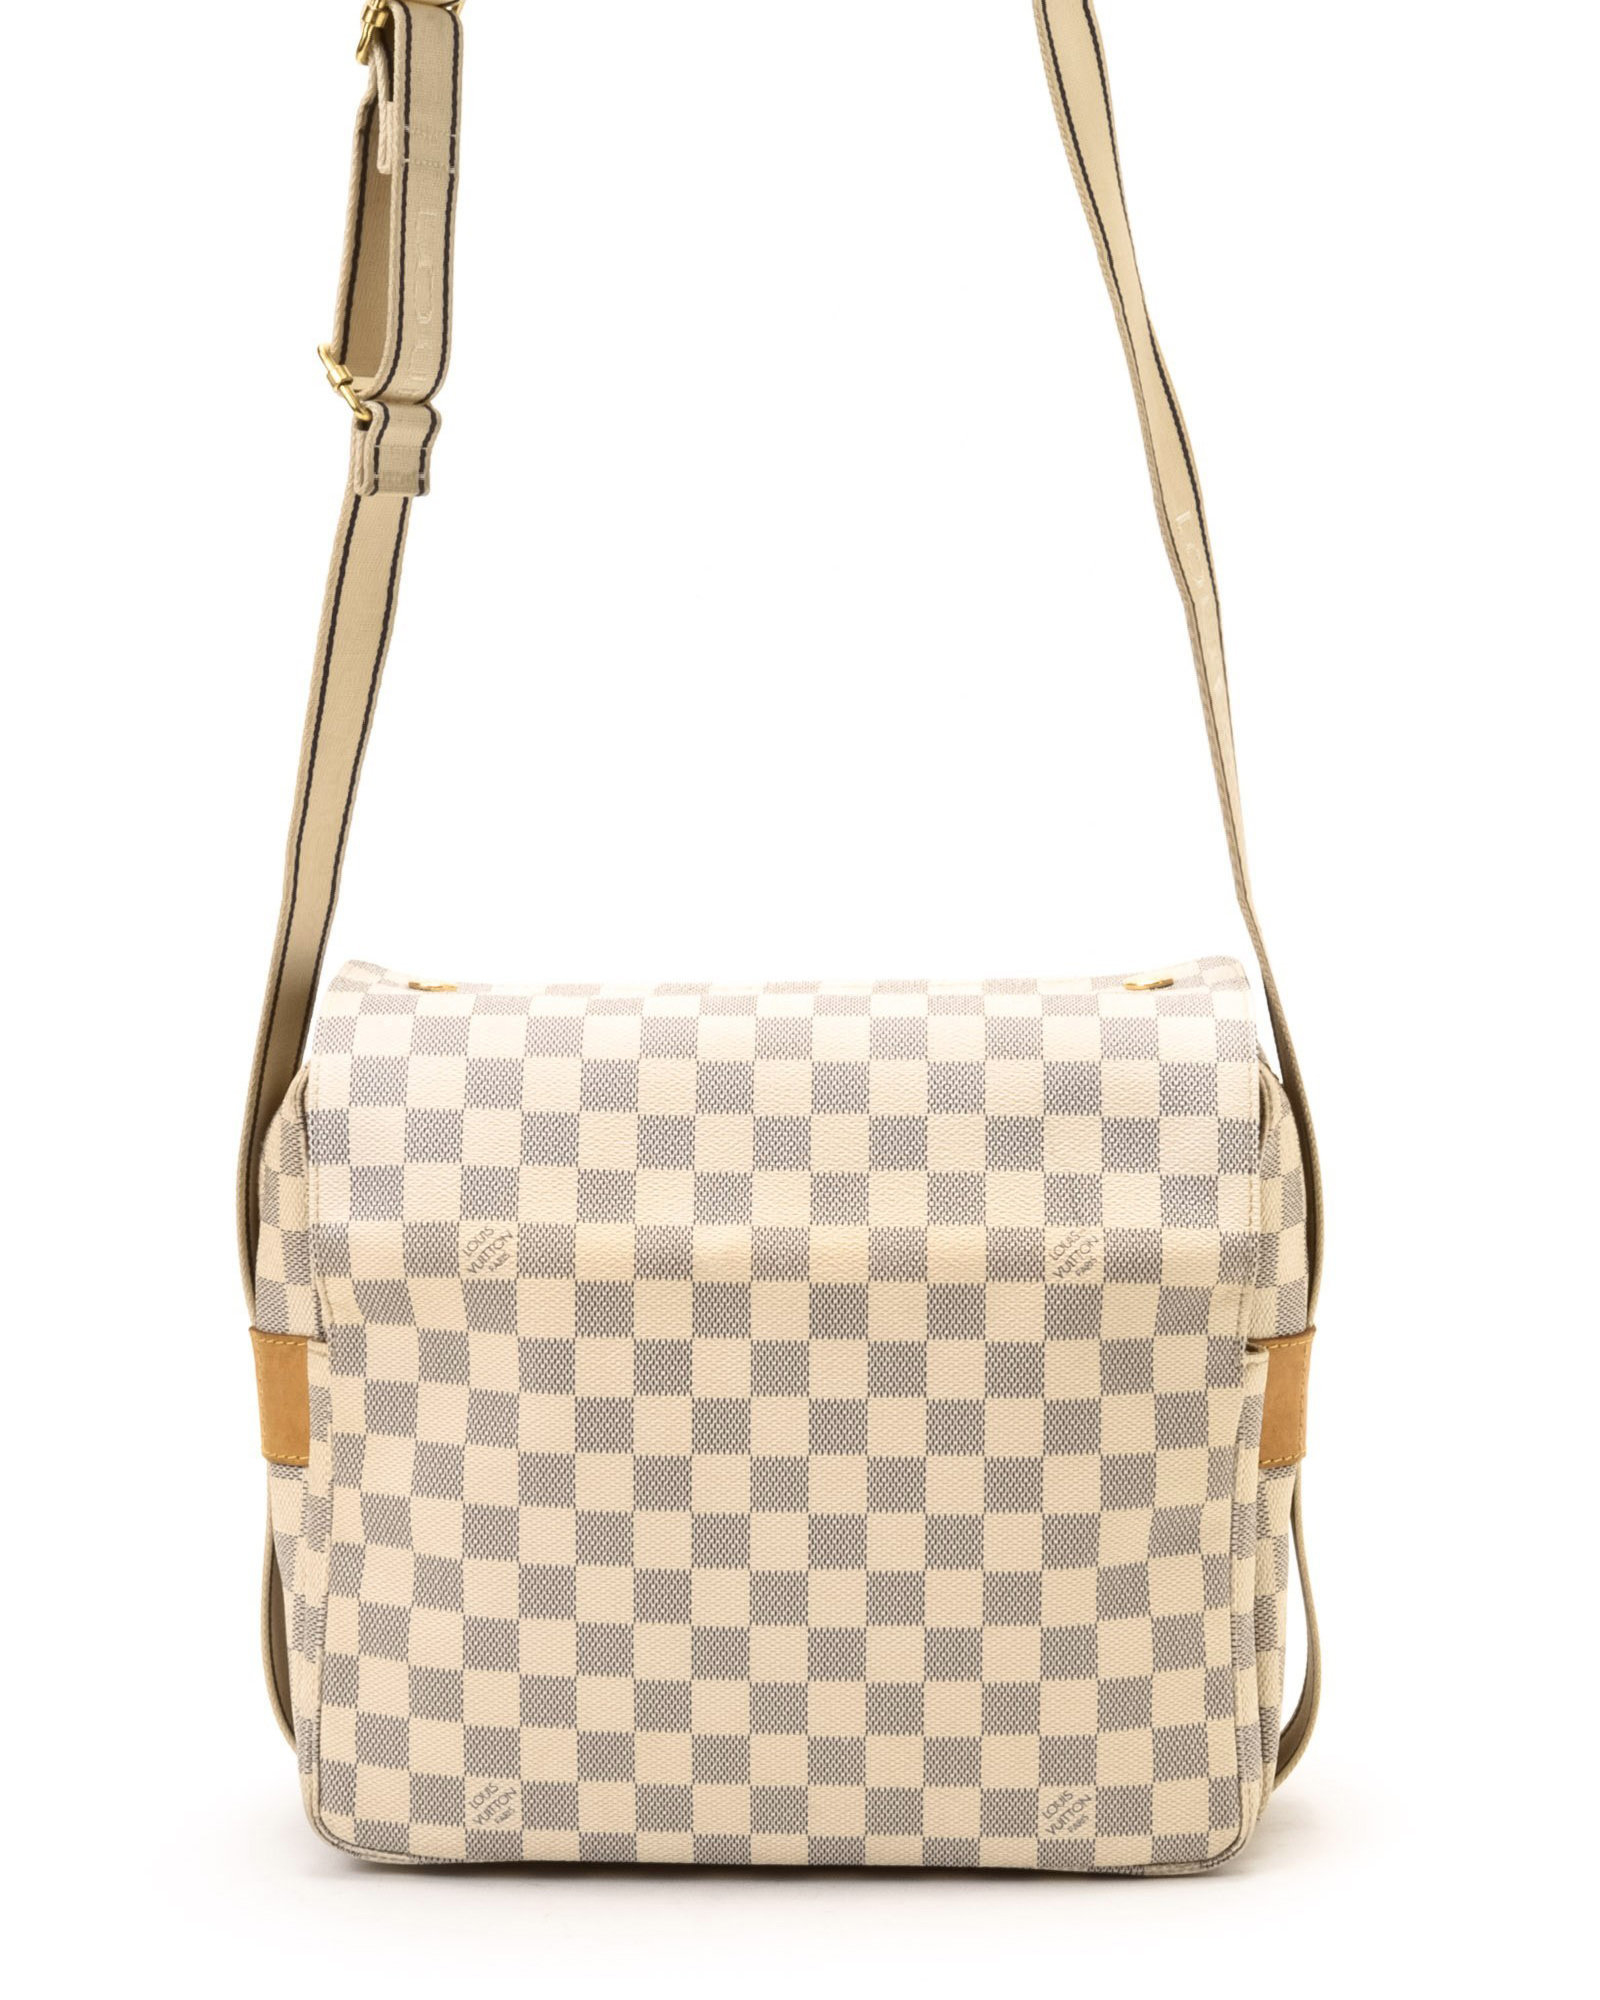 Fantastic Louis Vuitton Monogram Abbesses Messenger Bag - Handbags - LOU88047 | The RealReal